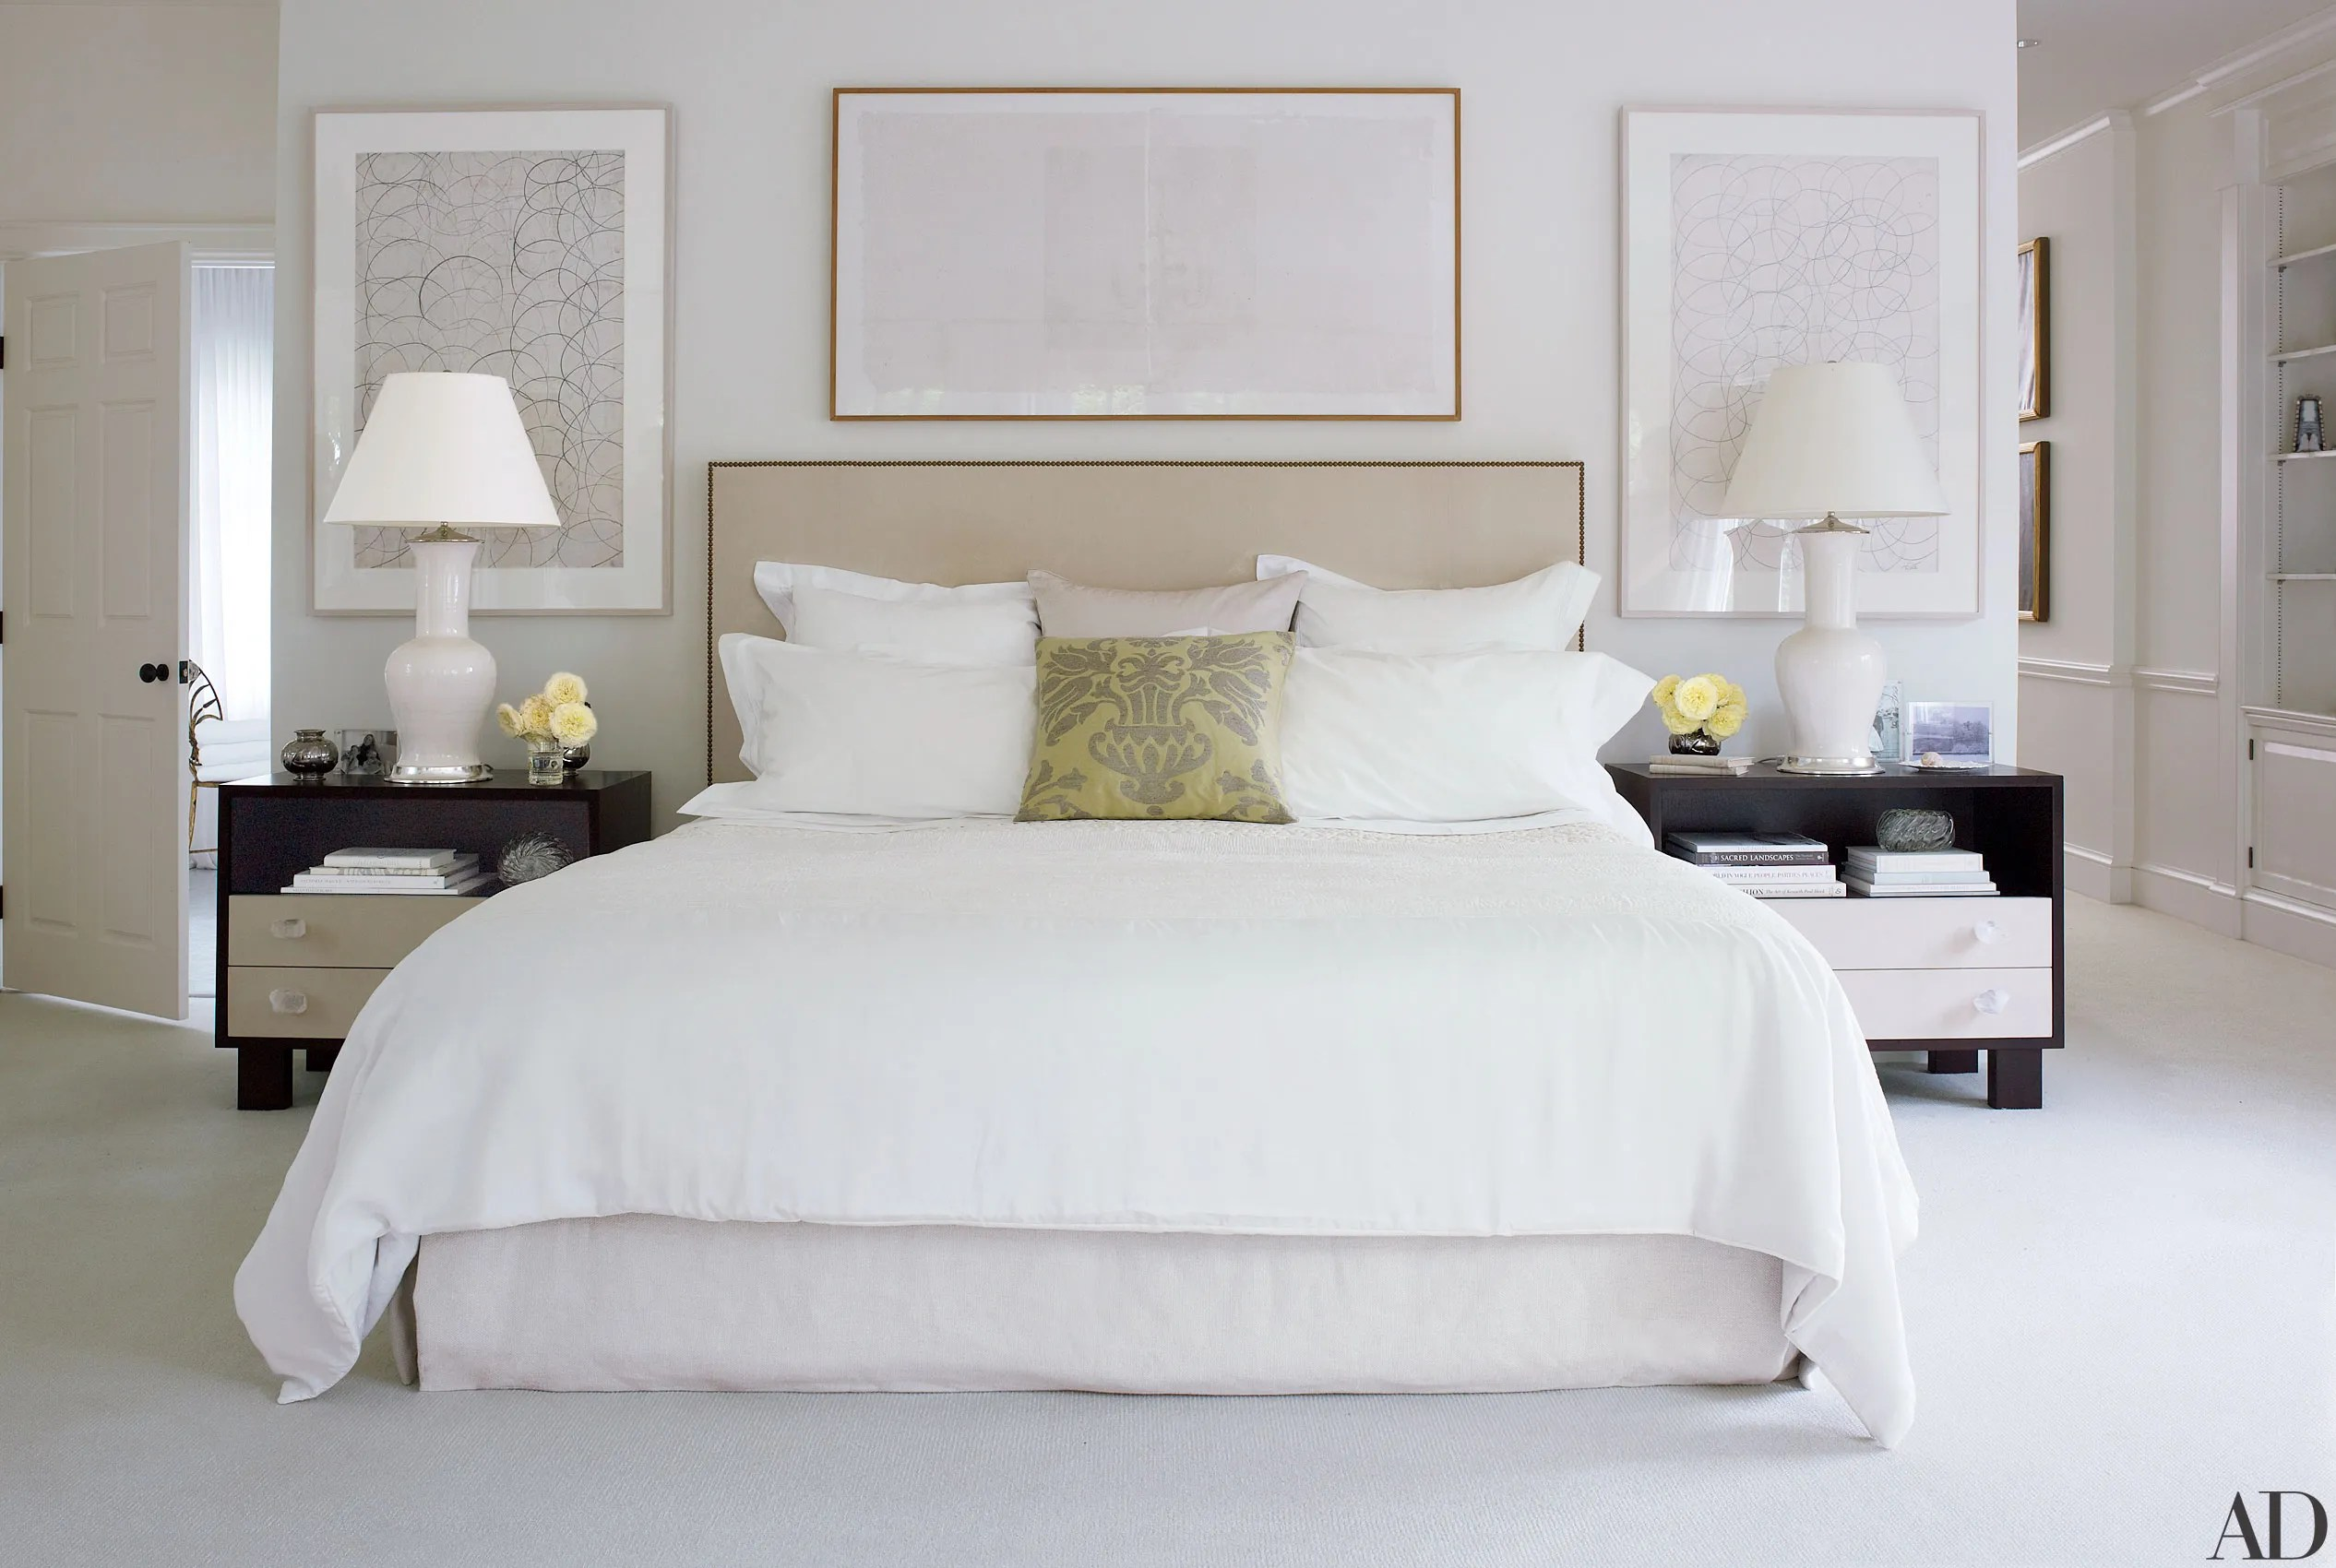 How To Keep Sheets White: Tips From The Laundress